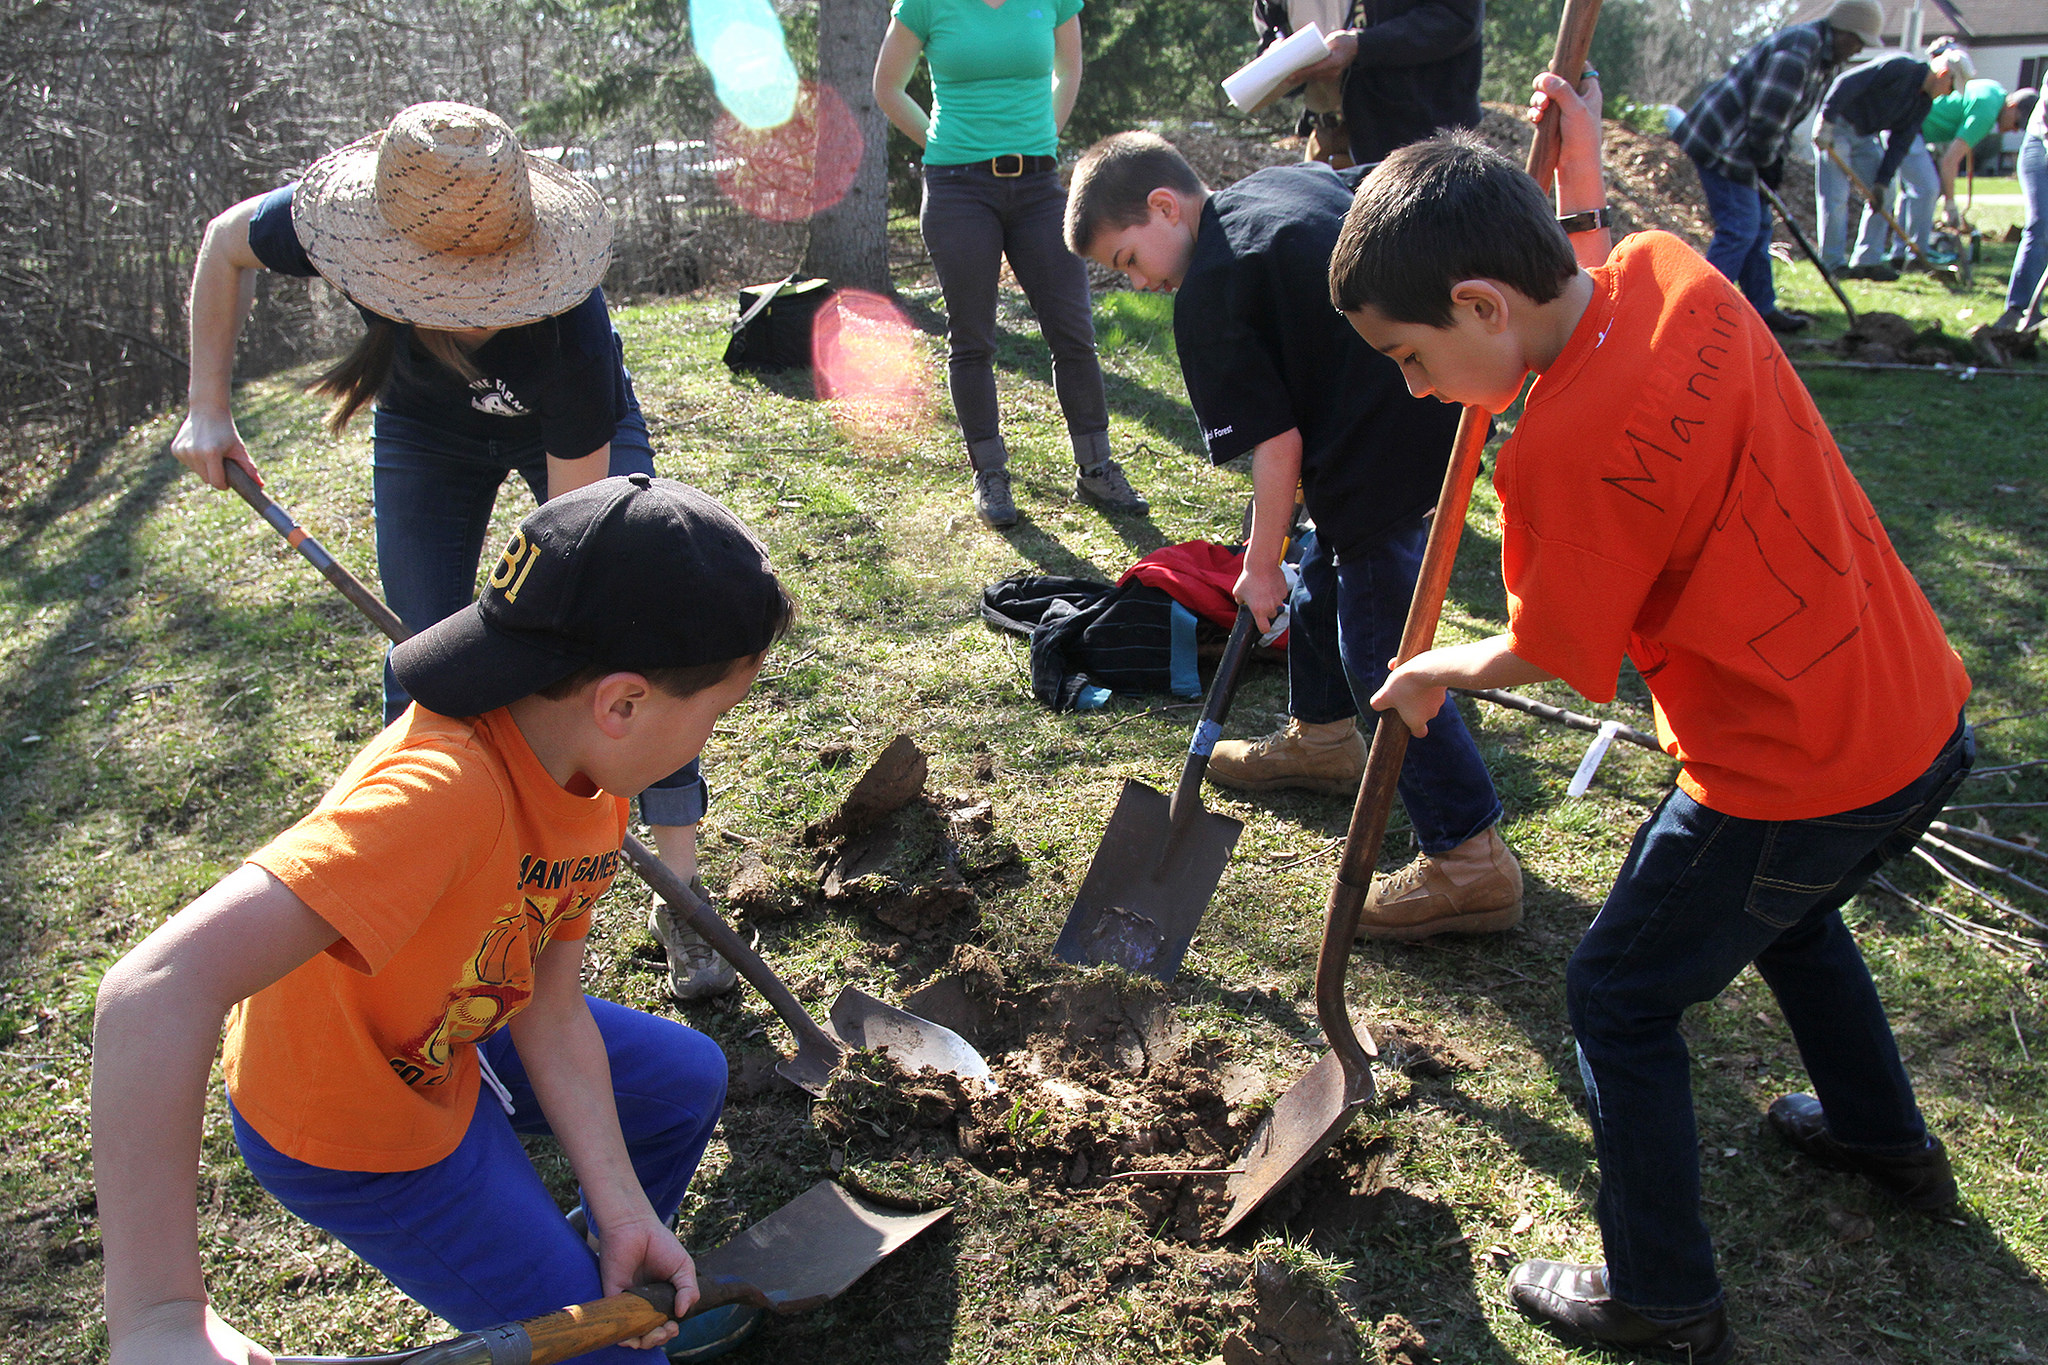 Boy scout troops helped plant trees at a location in Hales Corners. Hales Corners Environmental Committee was one of 2016's Fruity Nutty Five Contest winners. (Photo by Hannah Kiger, Victory Garden Initiative)